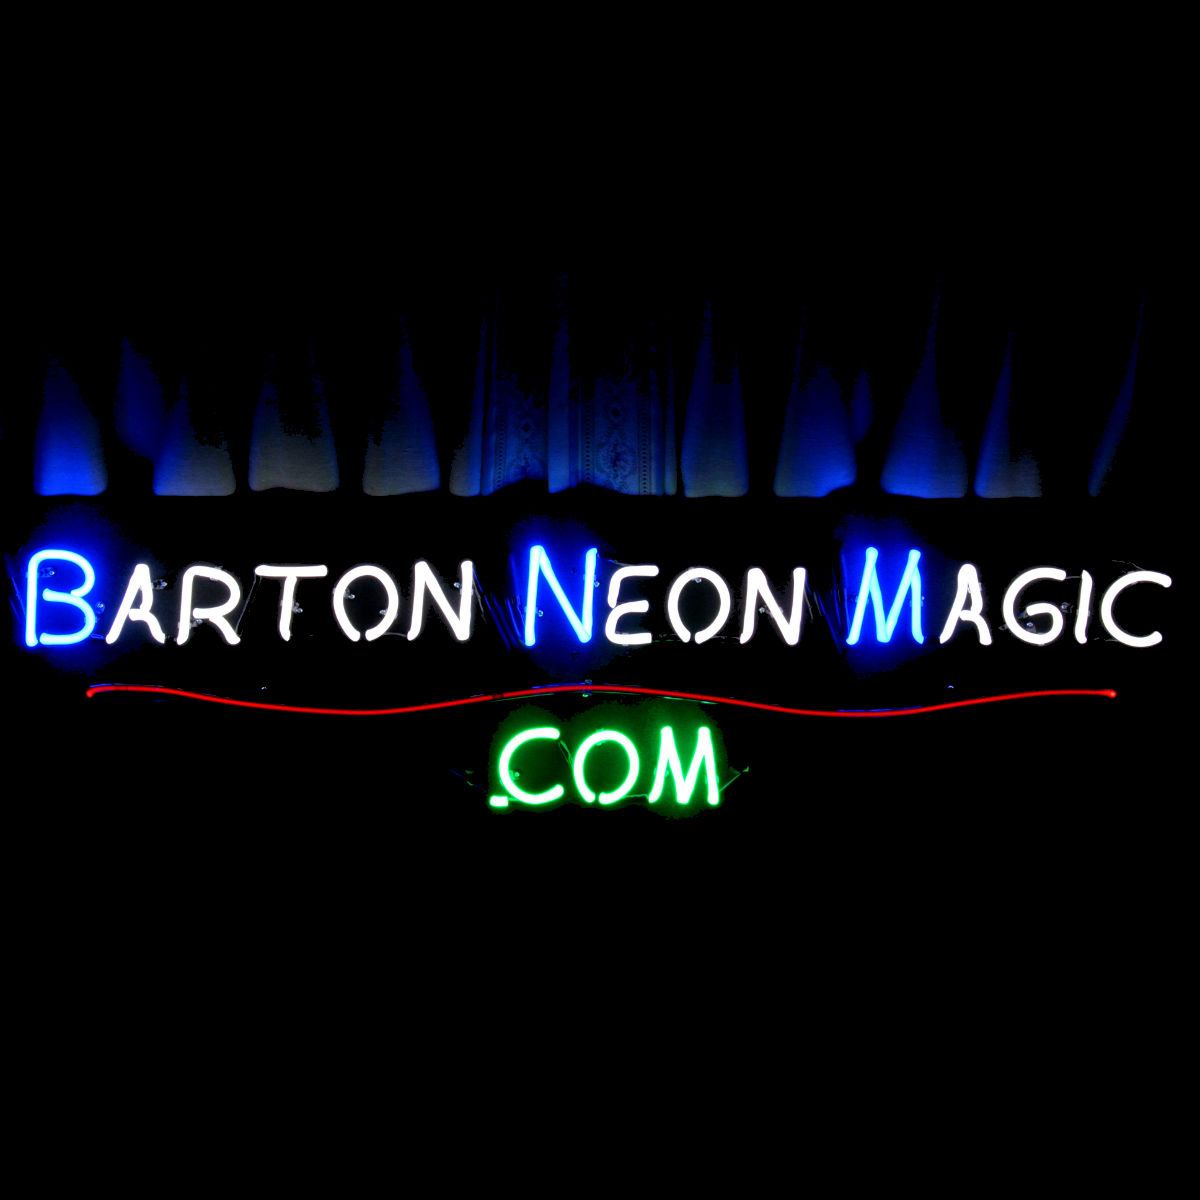 GIFTS FOR PILOTS - NEON LIGHT ARTWORKS - by John Barton - BartonNeonMagic.com